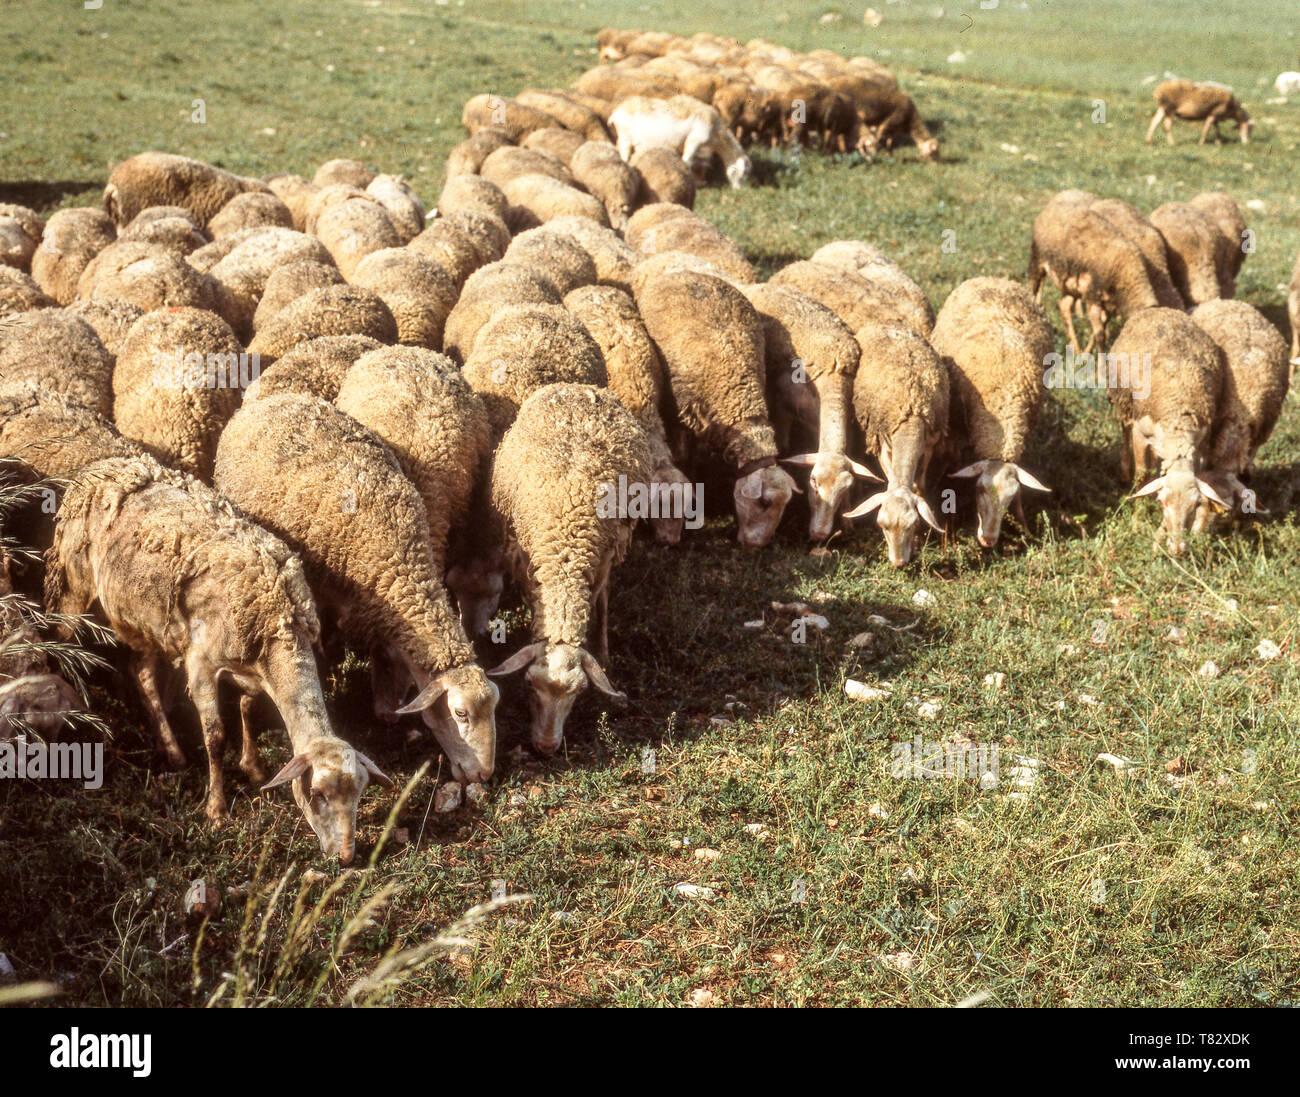 Sheep grazing on the Causse Mejean;a plateau about 10 k from the Gorges du Tarn.Dept Lozere. France - Stock Image